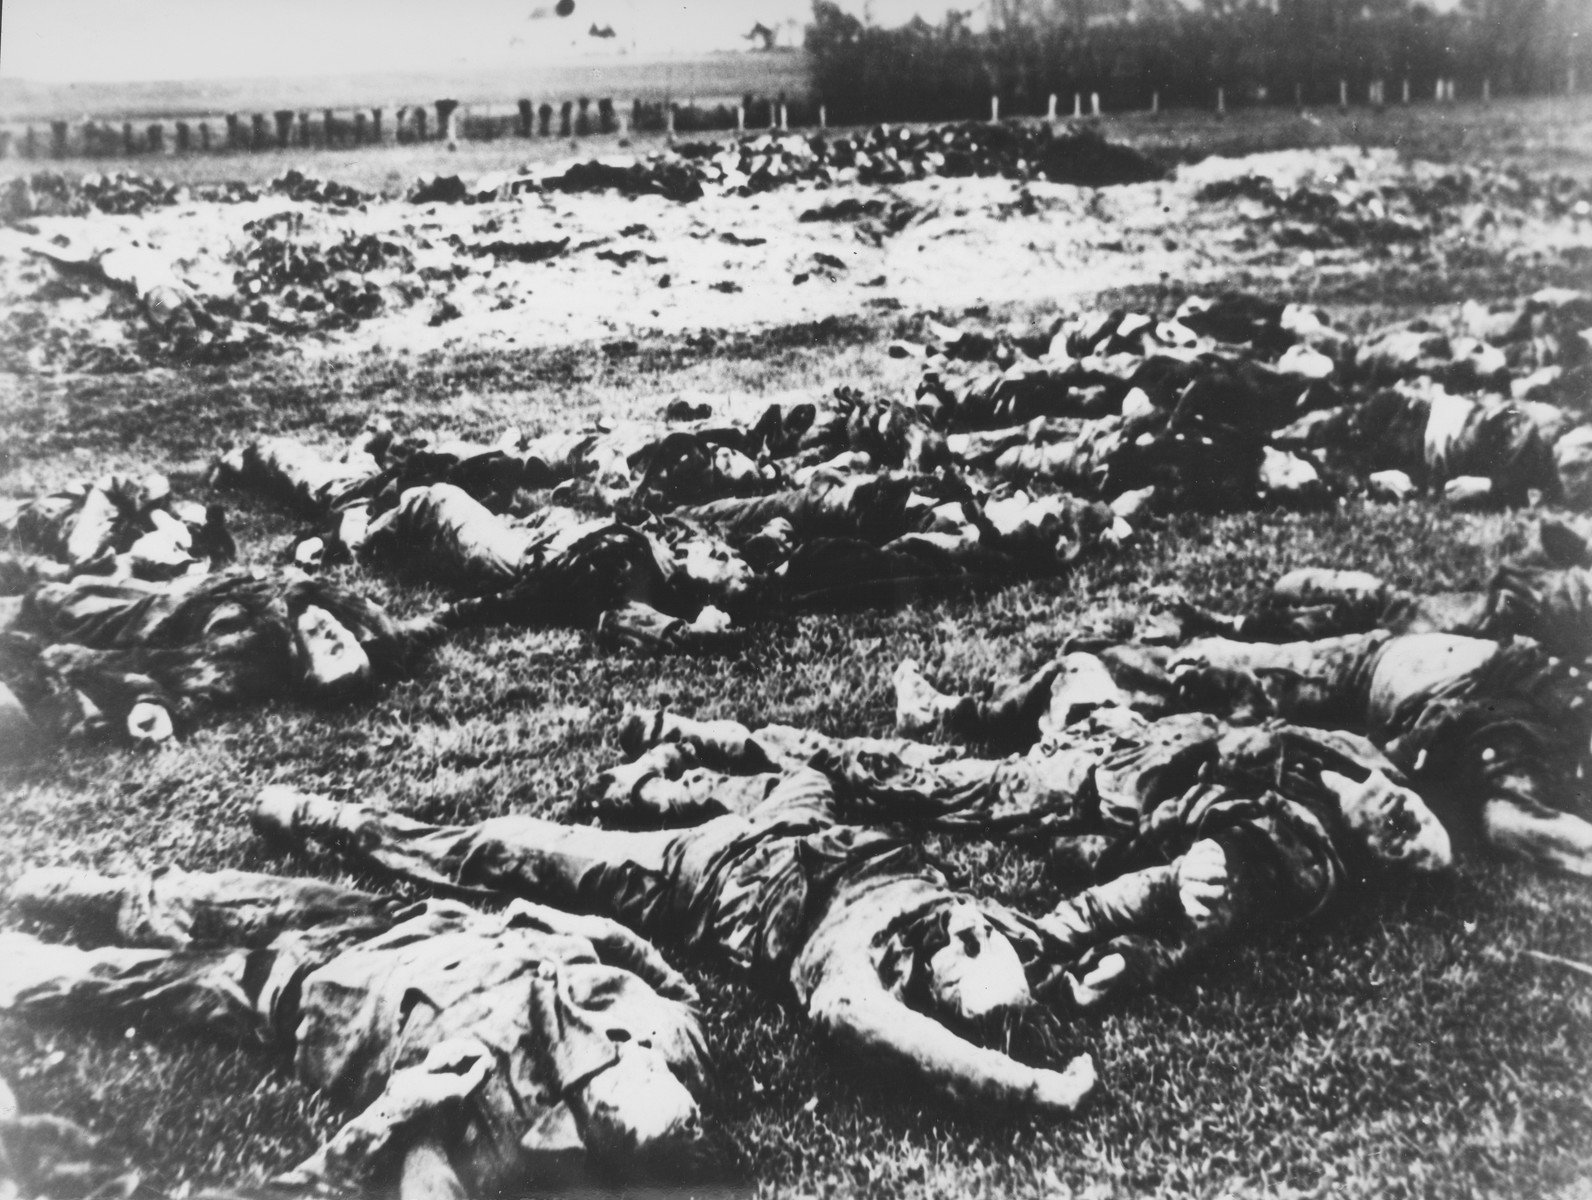 The bodies of Serbs killed by the Ustasa in the village of Gudovac, are laid out in rows in a large field.